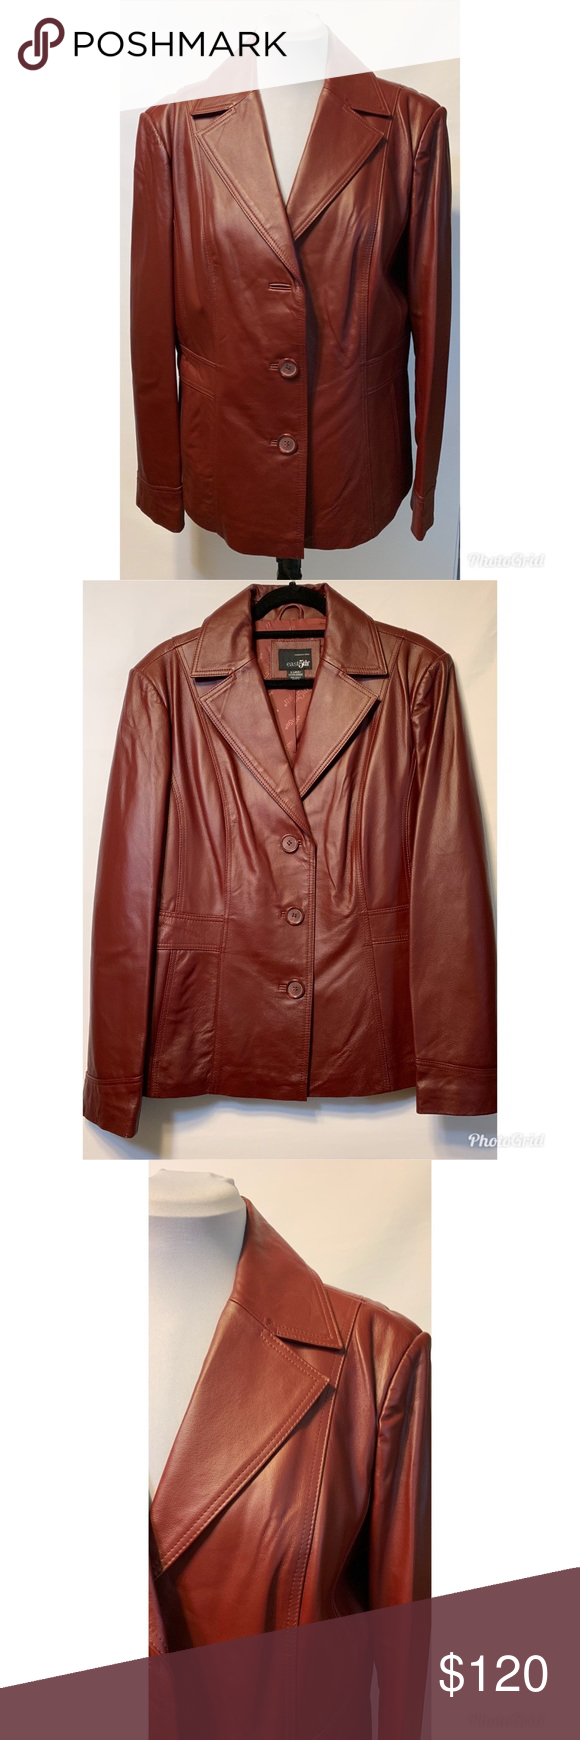 East 5th Ave Leather Jacket Rusty Red XL Pockets Leather